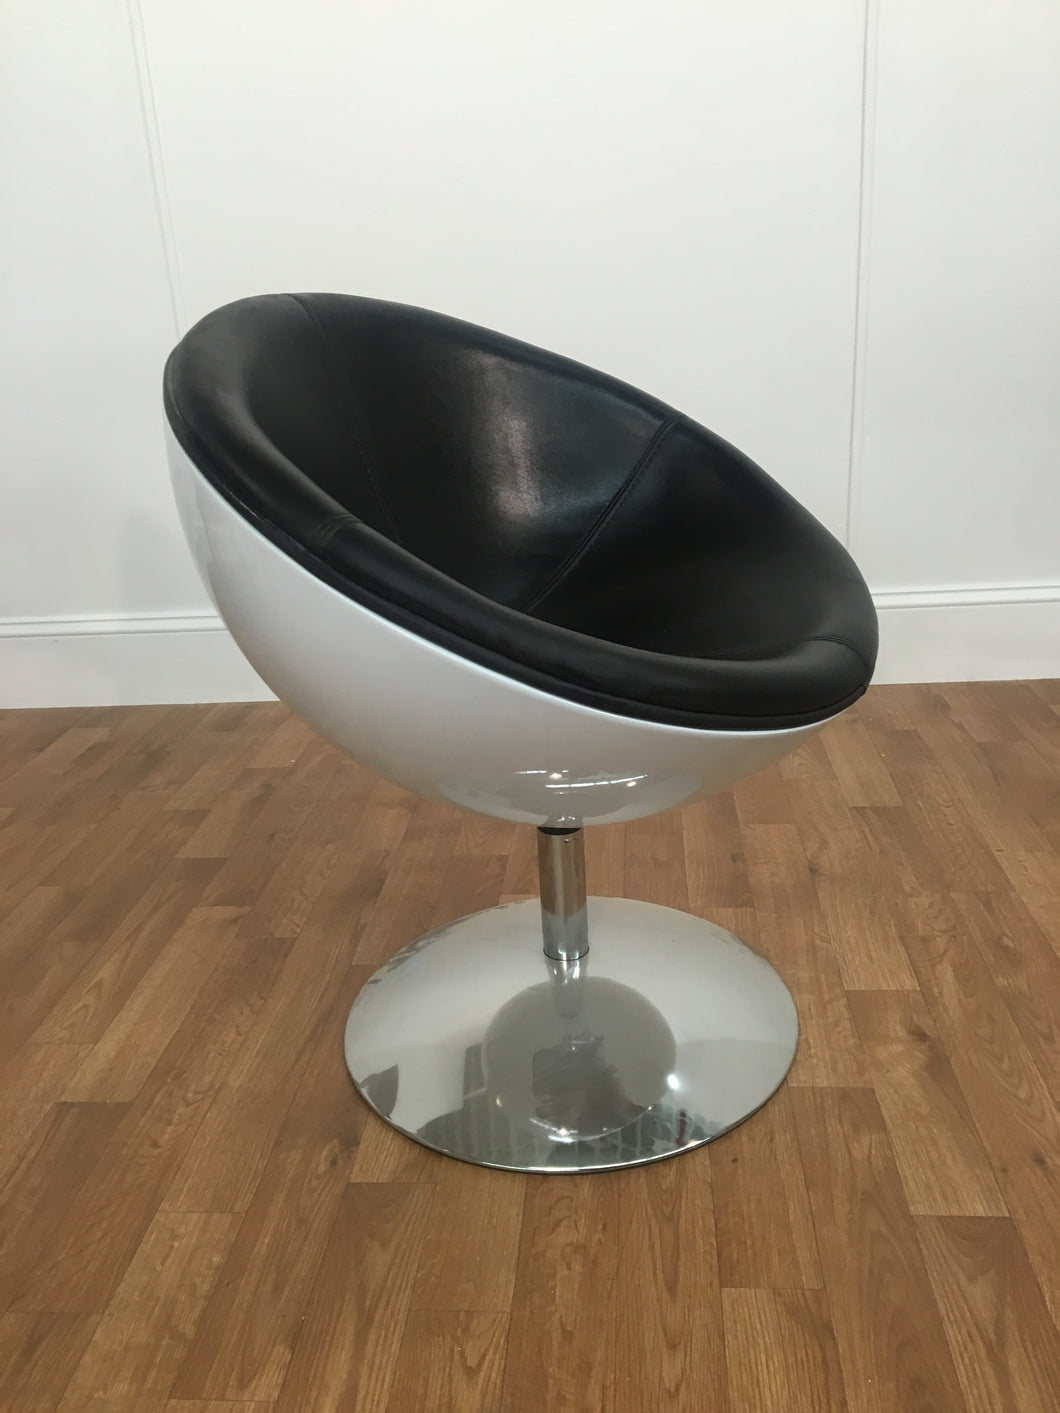 MOON SHAPED SWIVEL SPACE CHAIR